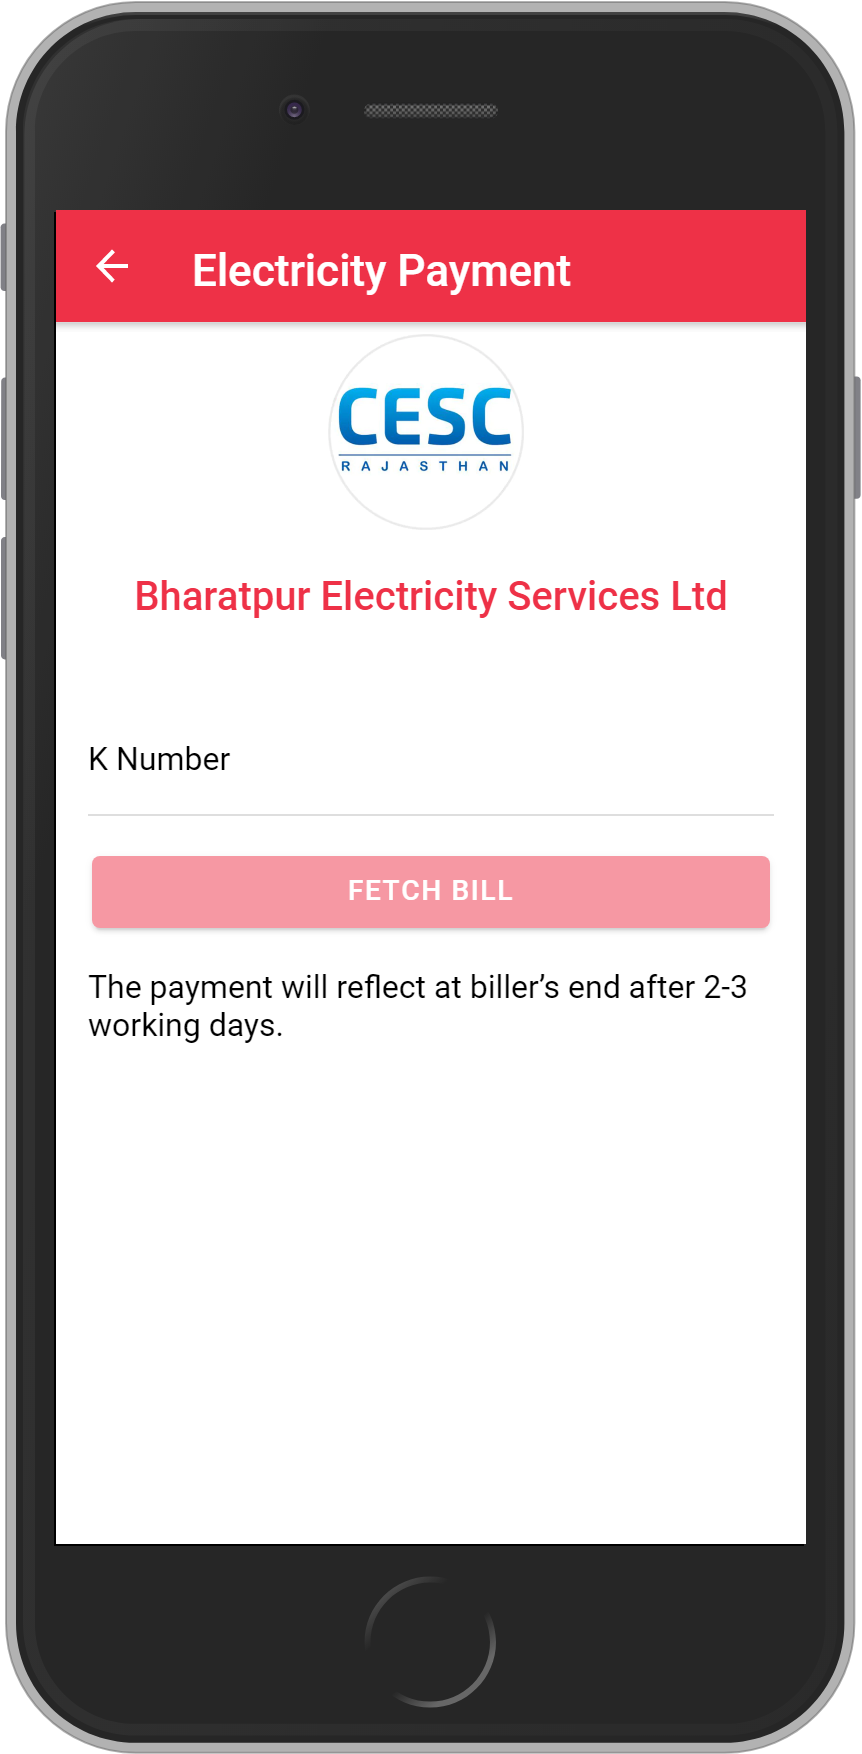 Get UNLIMITED <b>0.1%</b> CASHBACK on Bharatpur Electricity Services Ltd Bill Payment.